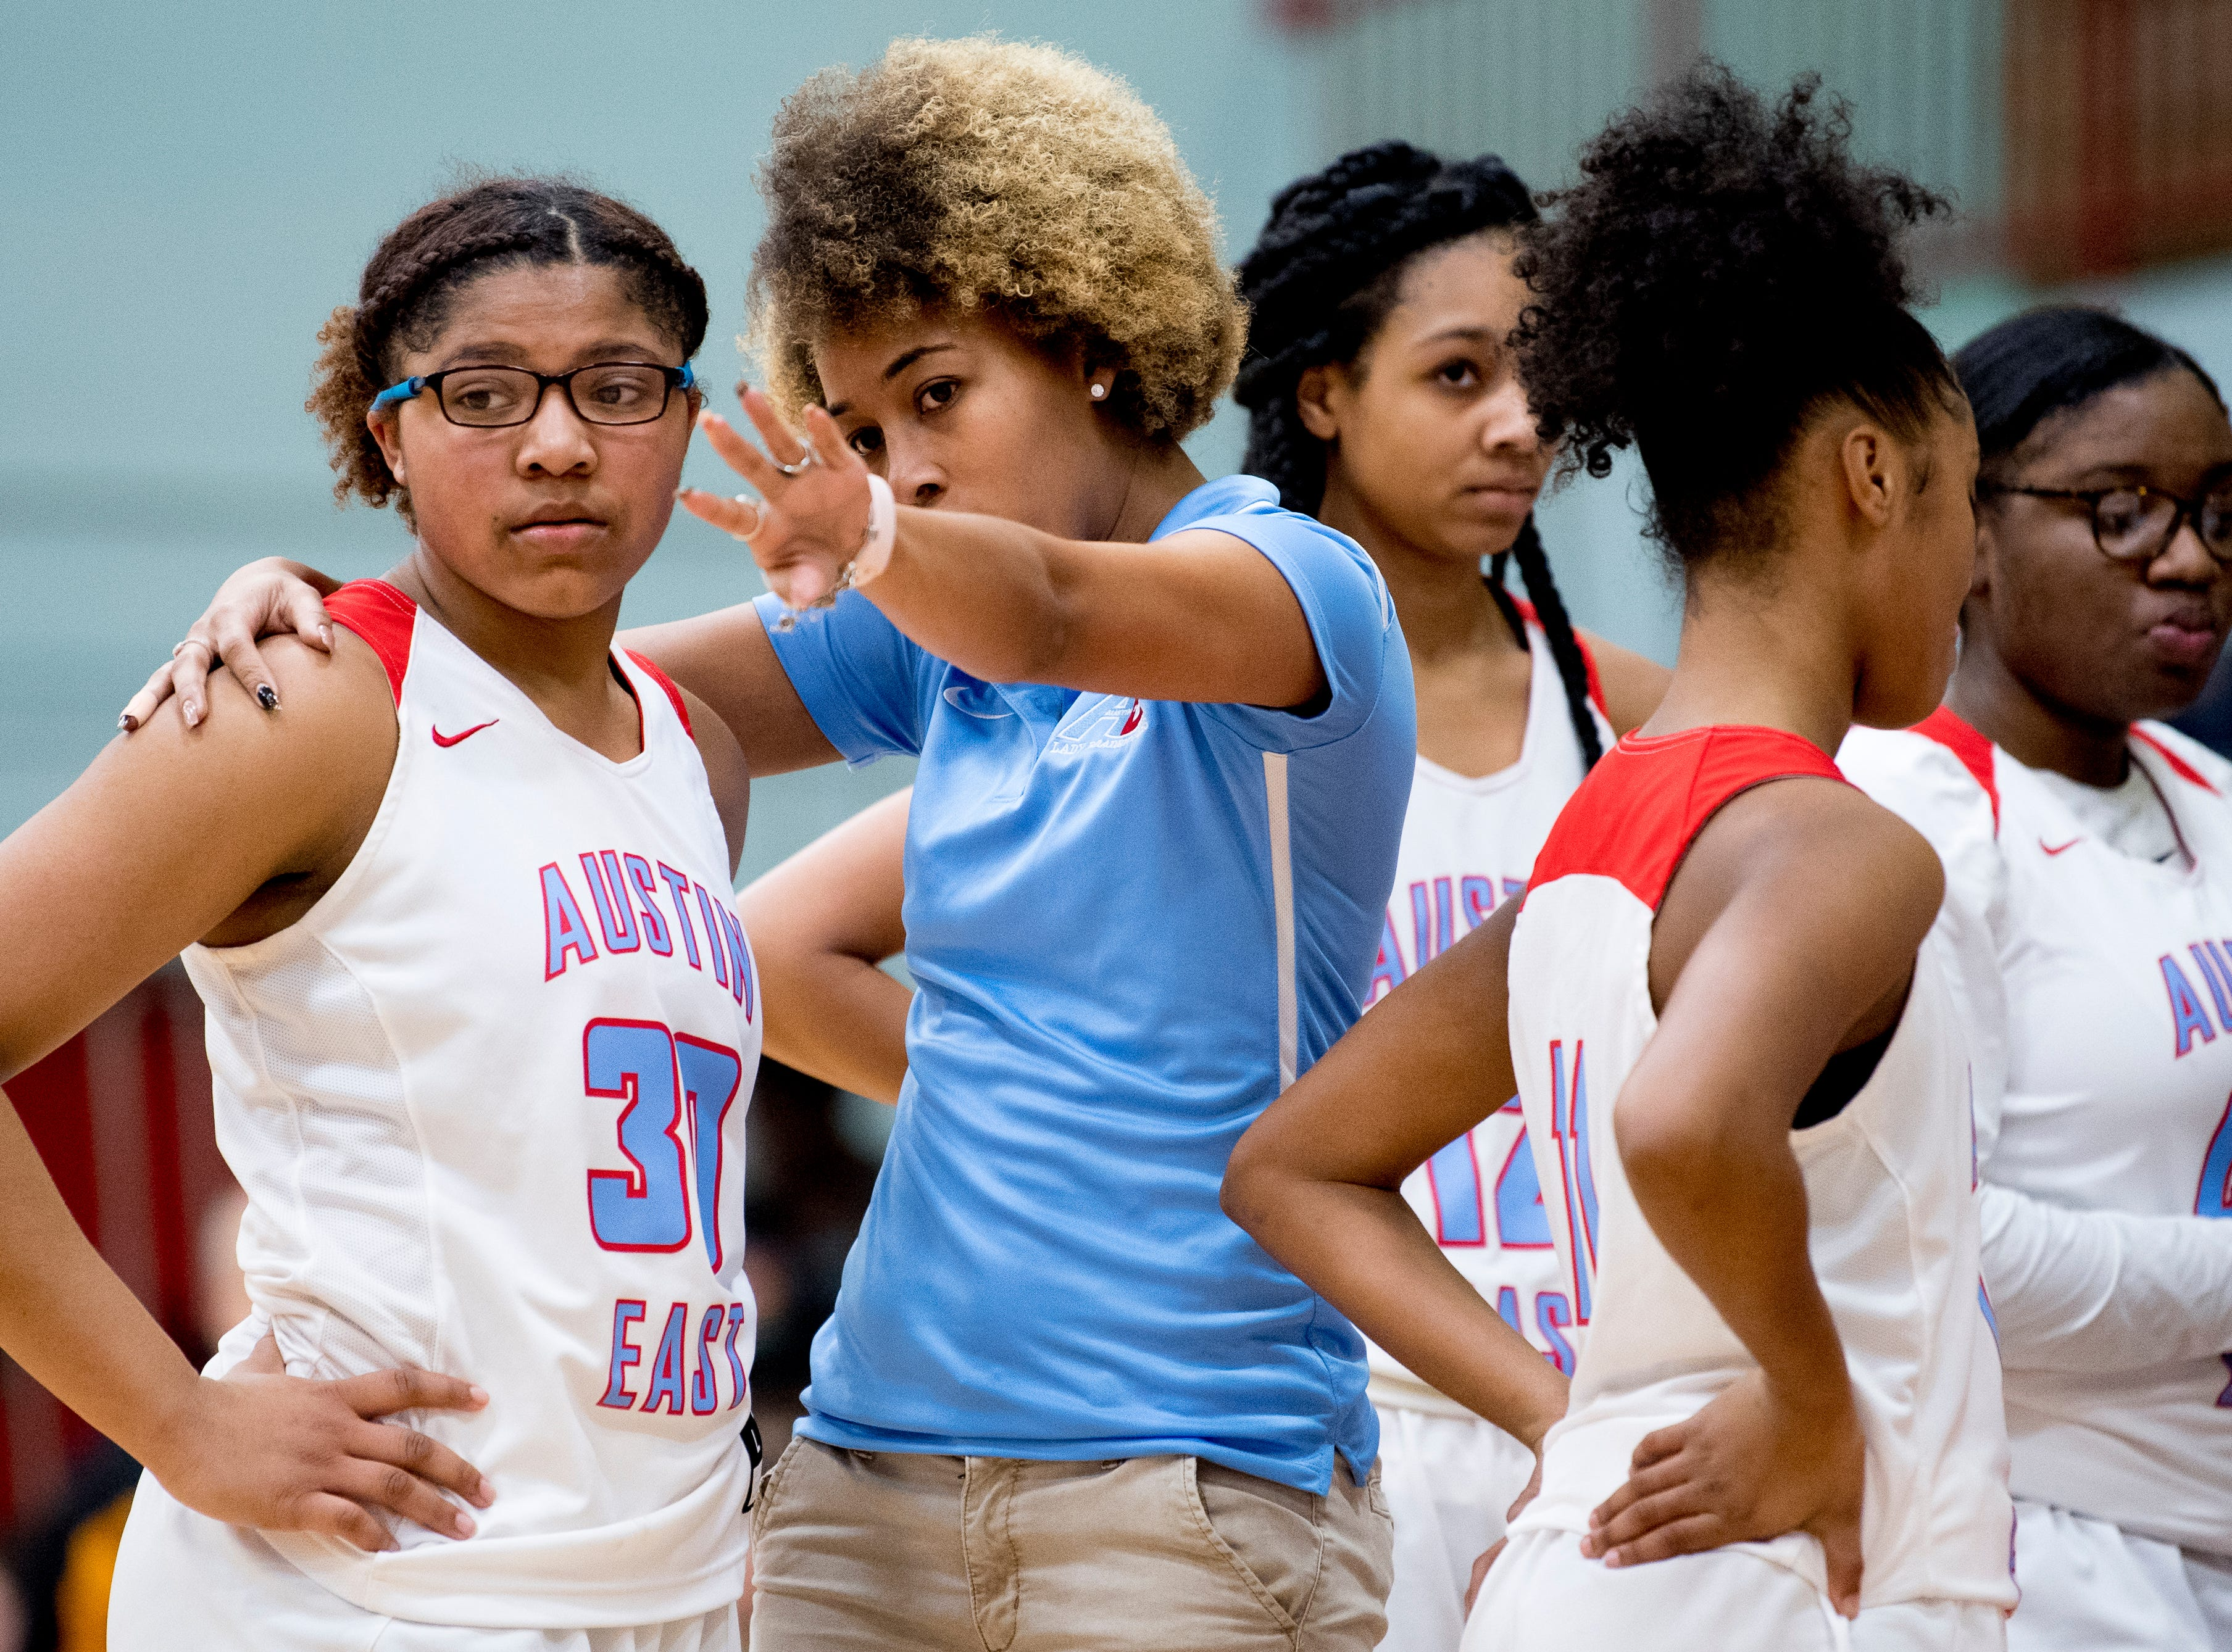 Austin-East's Ahya Moreno (30) gets some tips from Coach Jalan Harper during a game between Austin-East and Alcoa at Austin-East High School in Knoxville, Tennessee on Friday, January 18, 2019.